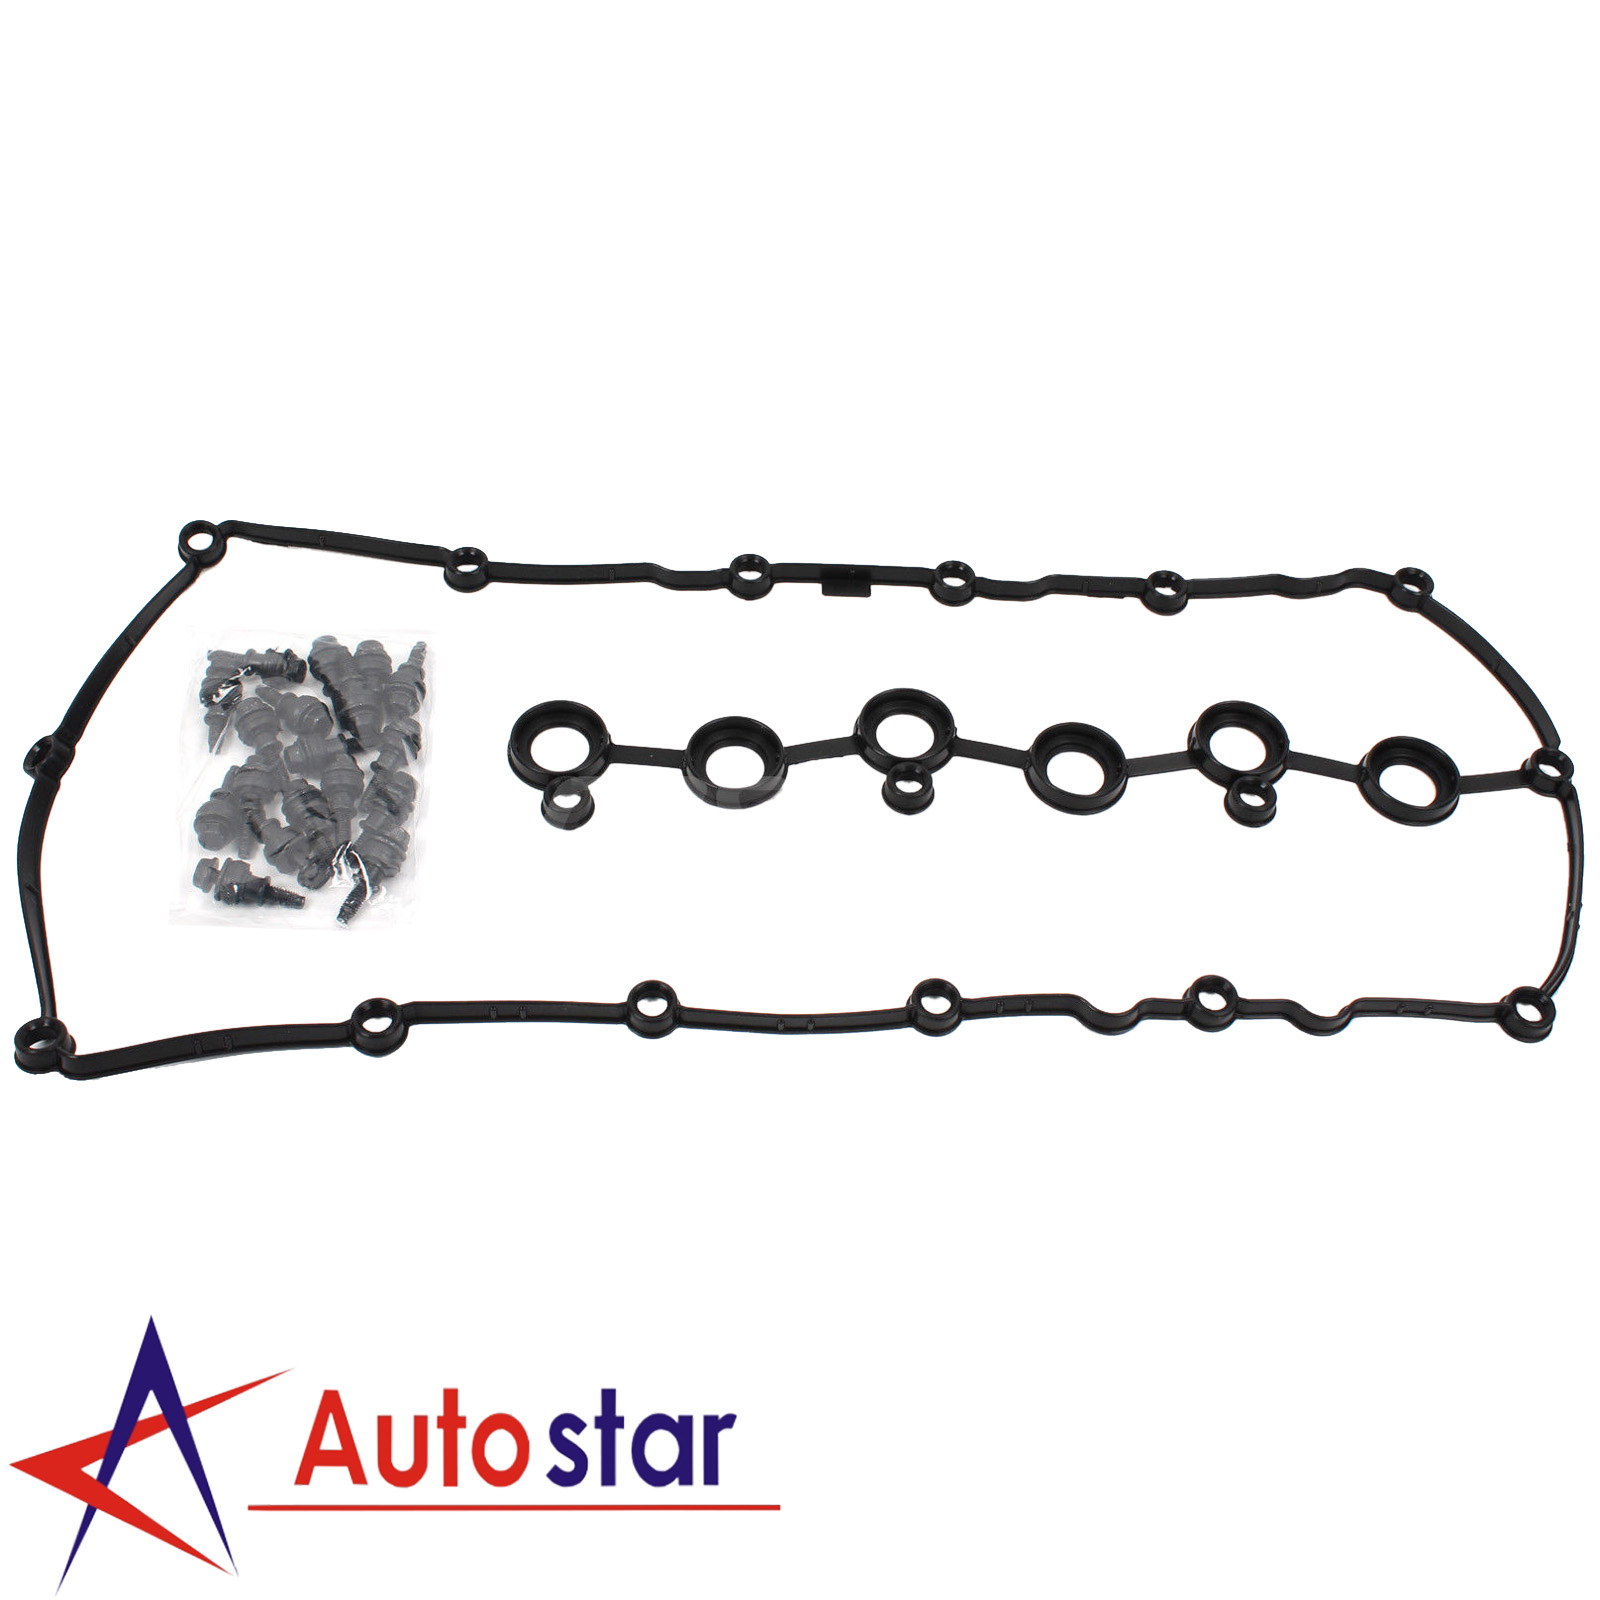 03h H Engine Valve Cover With Gasket Seals For Passat